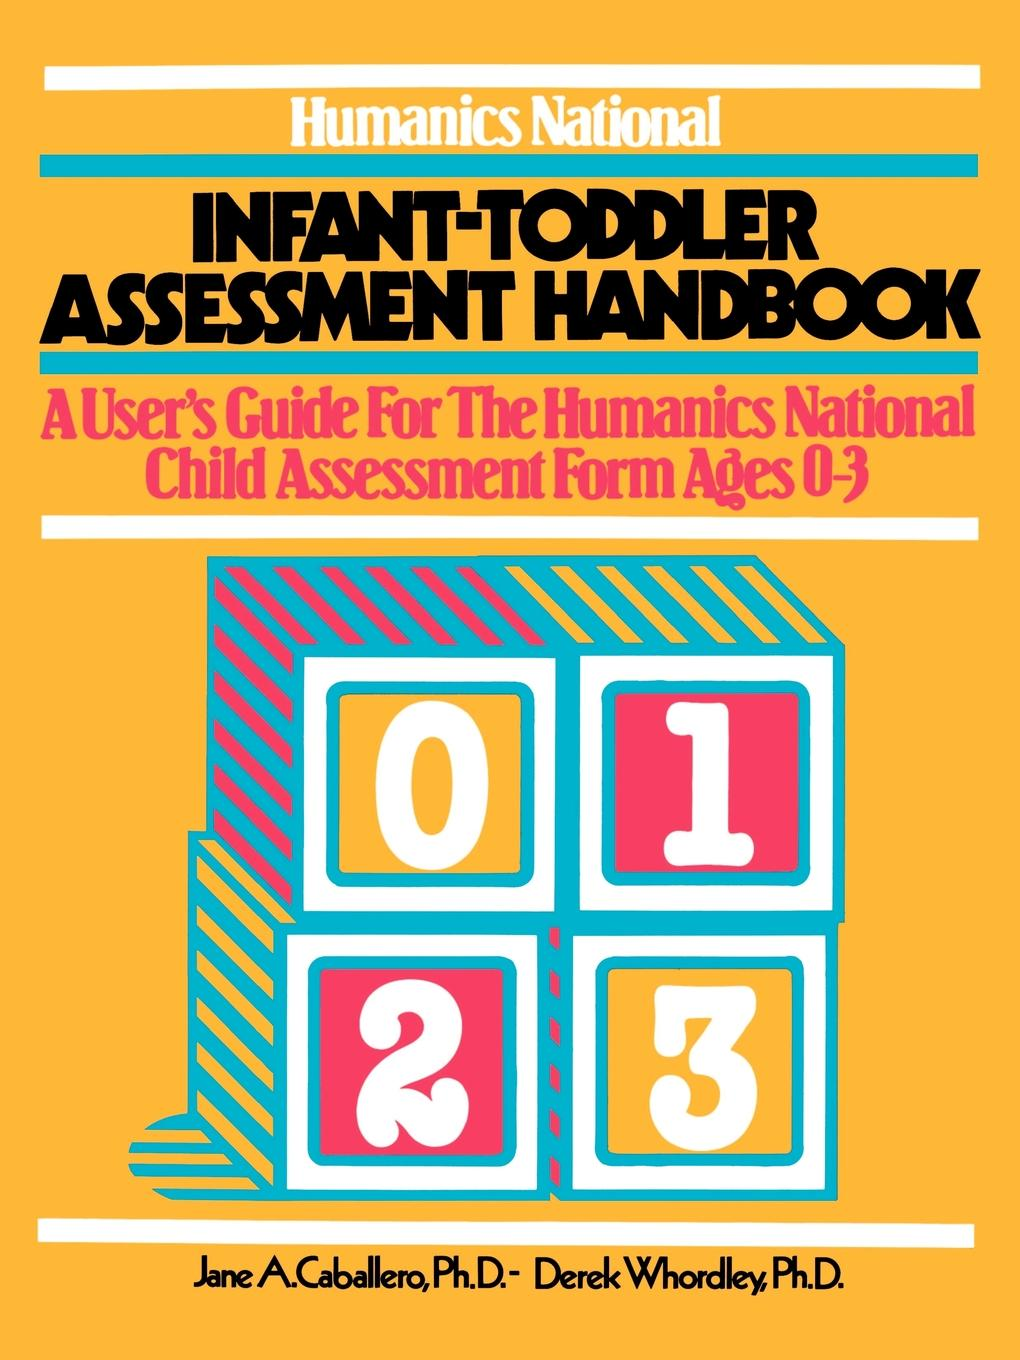 Humanics National Infant-Toddler Assessment Handbook